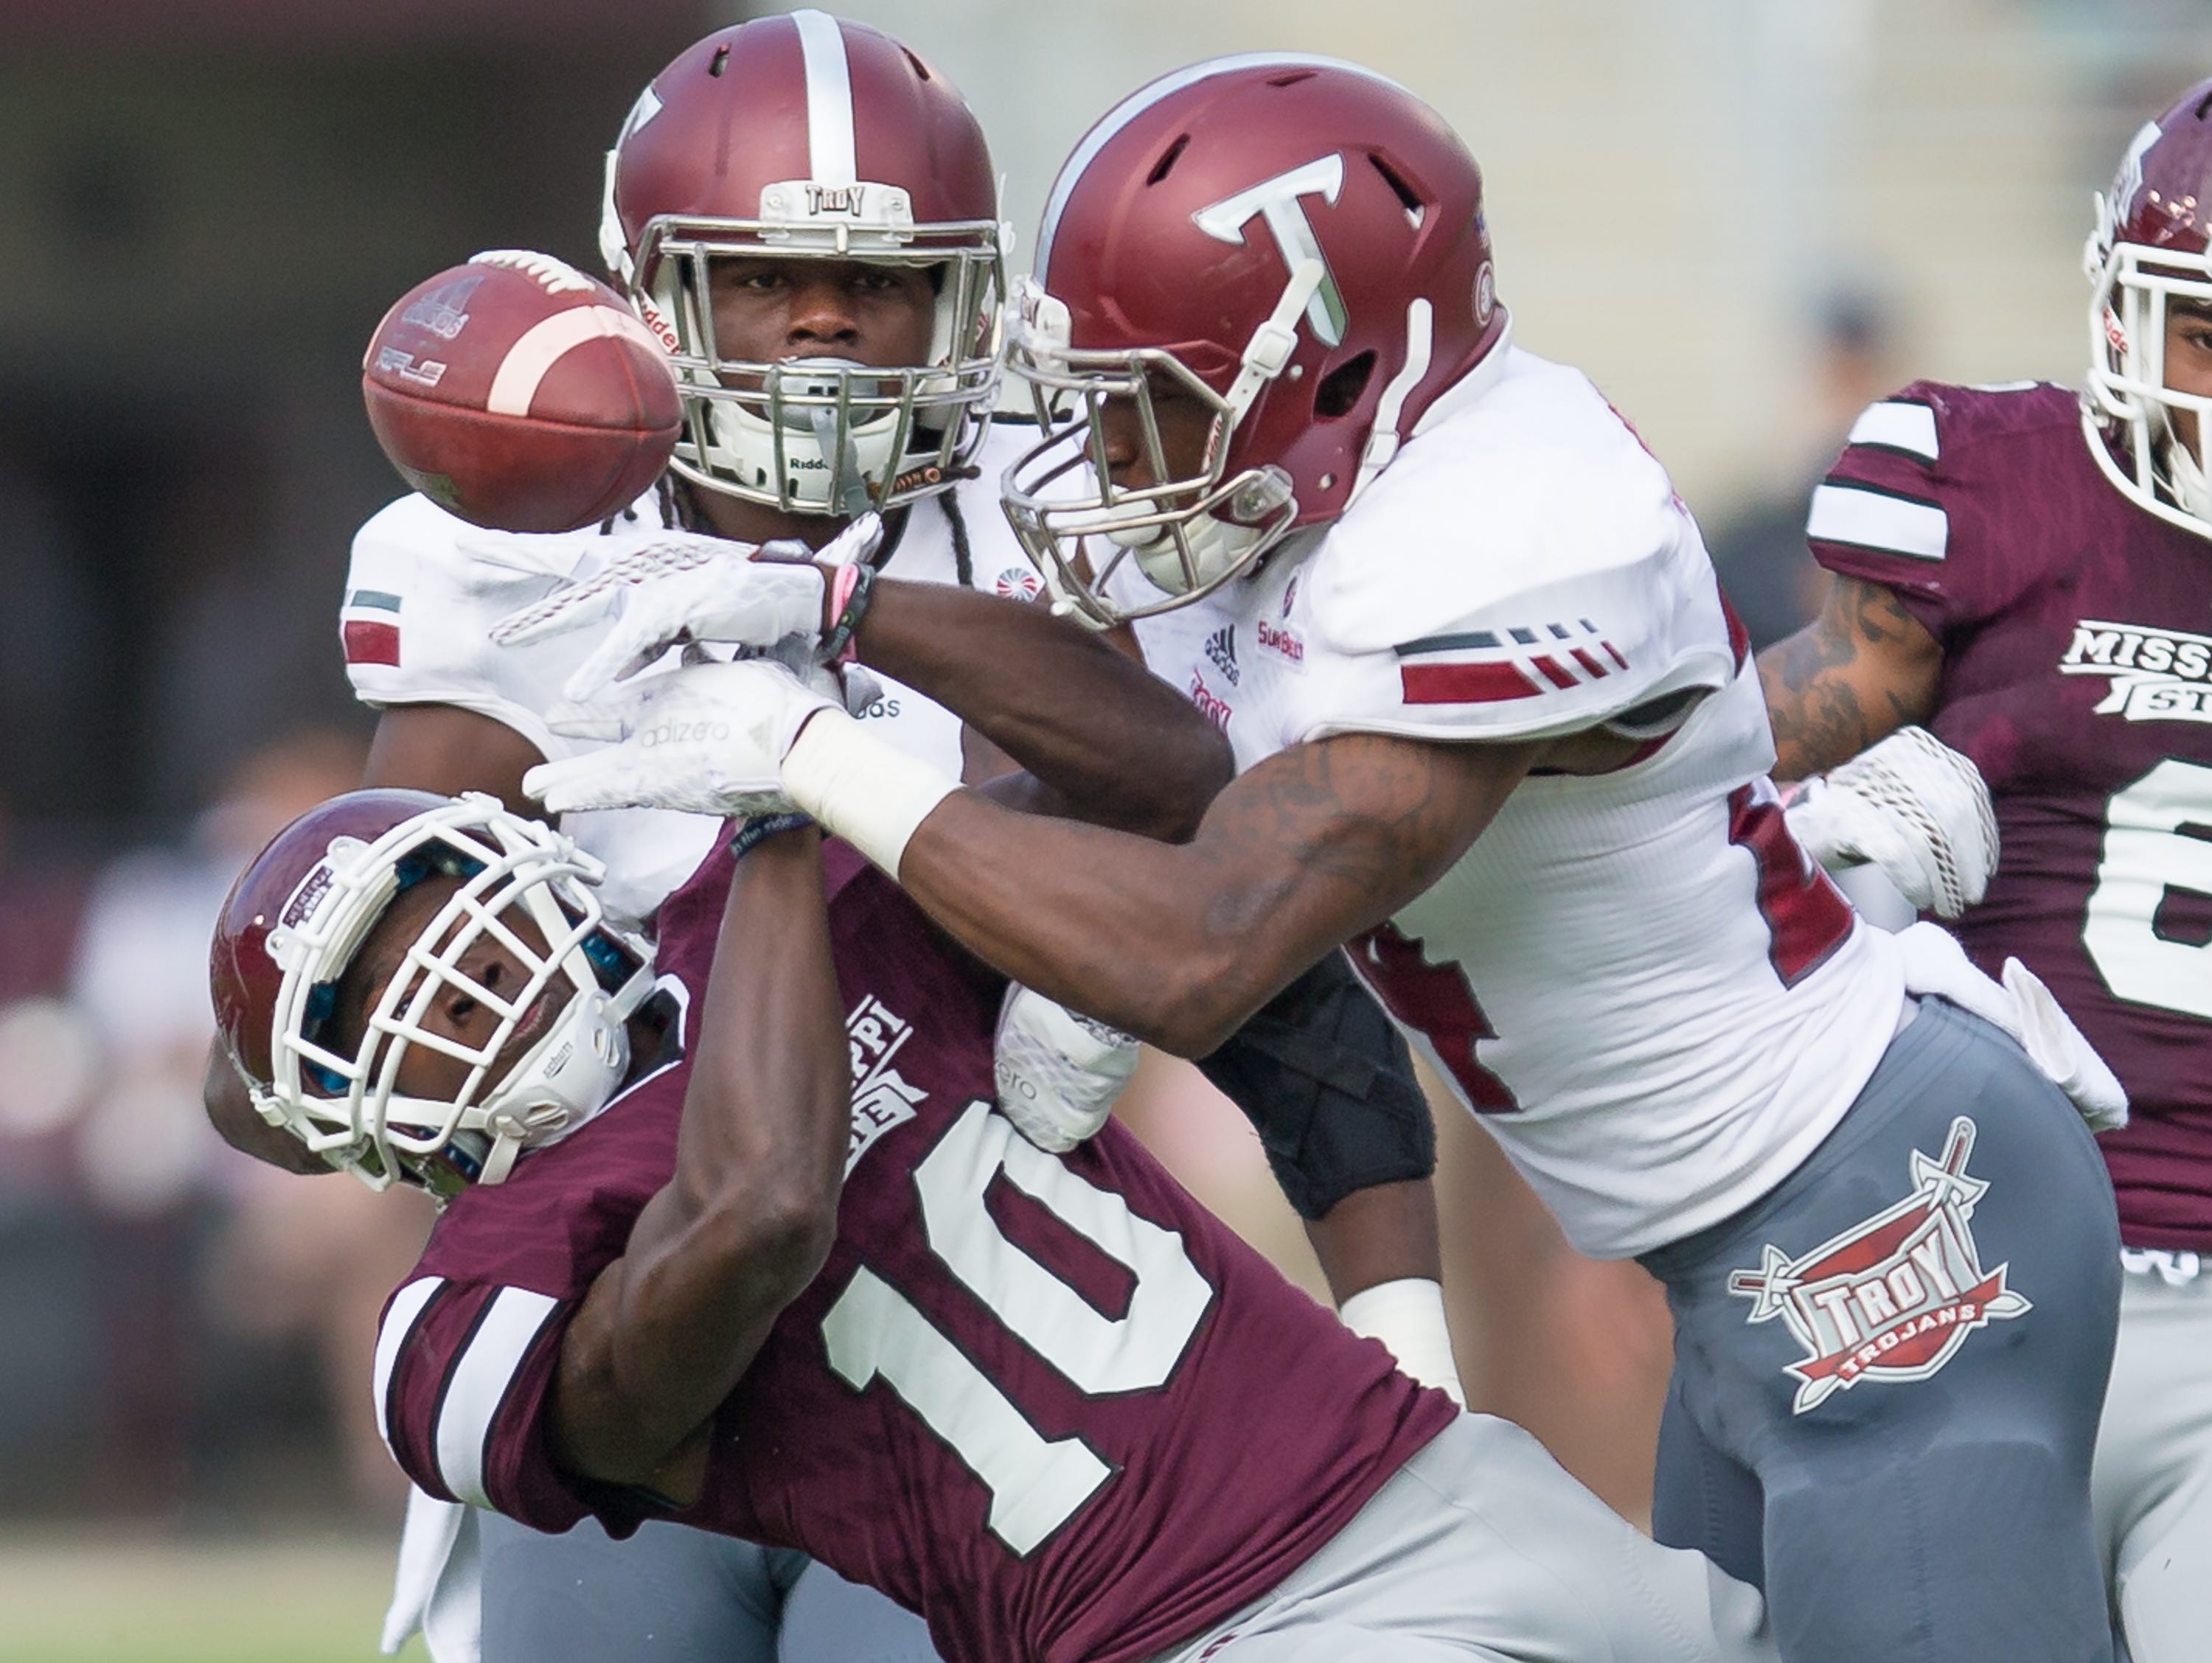 Mississippi State running back Brandon Holloway (10) is hit by Troy's JaQuadrian Lewis (14), Mississippi State played Troy in a college football game on Saturday, October 10, 2015 at Davis Wade Stadium in Starkville. Photo by Keith Warren (Mandatory Photo Credit)